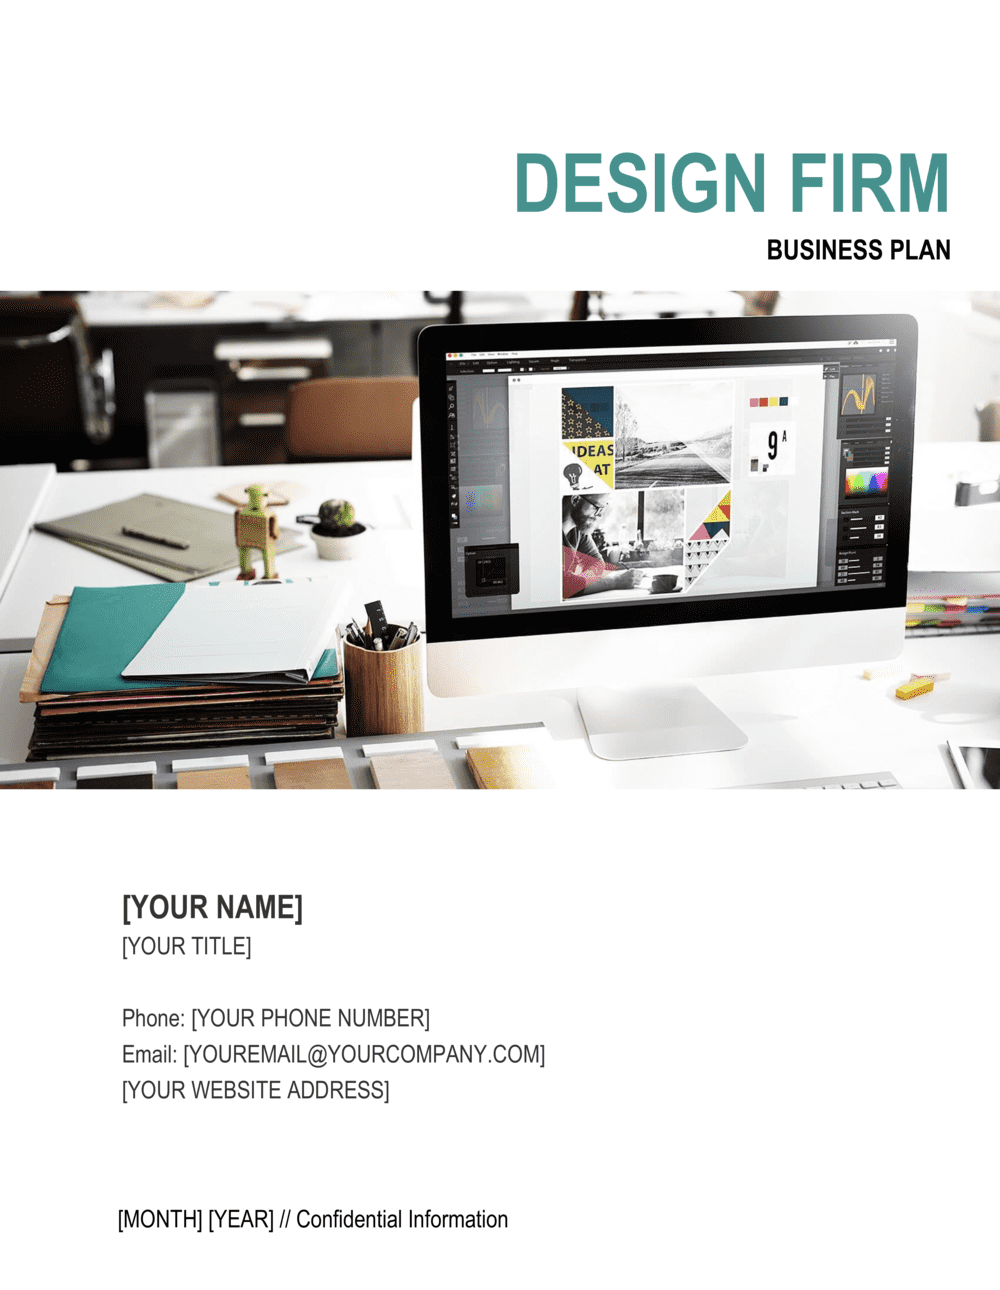 Business-in-a-Box's Design Firm Business Plan Template